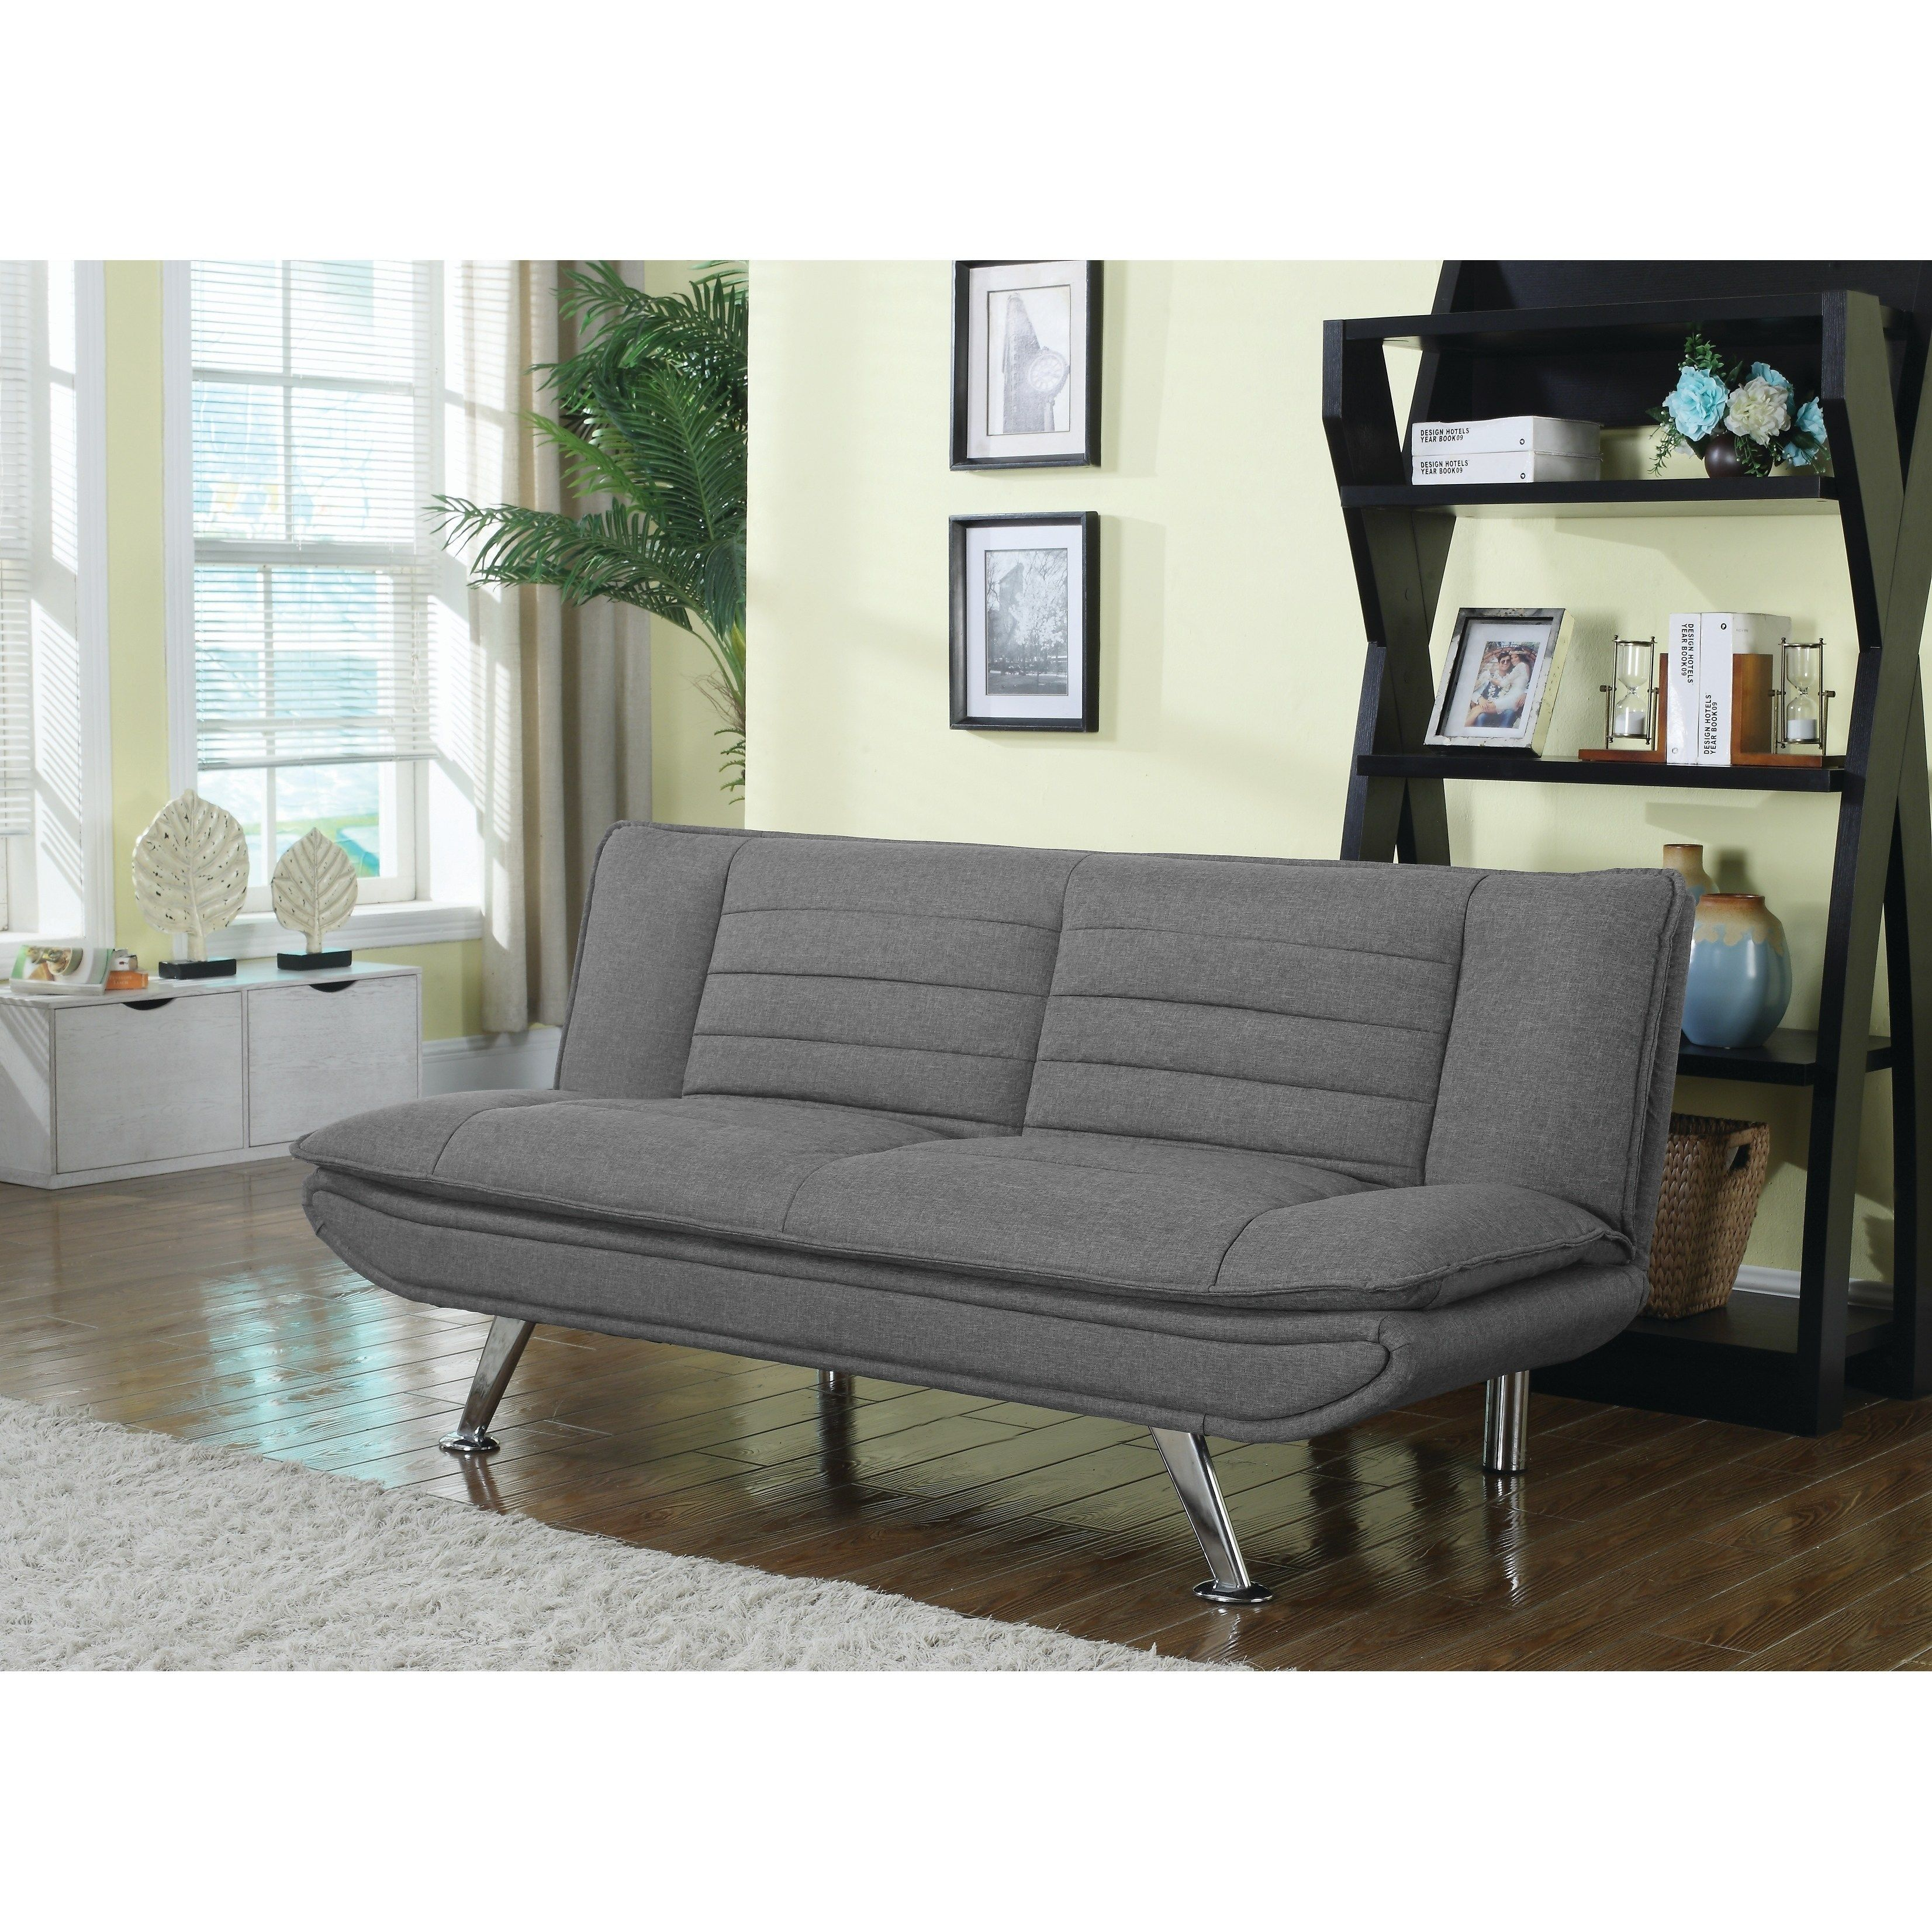 Swell Casual Grey Sofa Bed Gray Coaster Products In 2019 Ncnpc Chair Design For Home Ncnpcorg